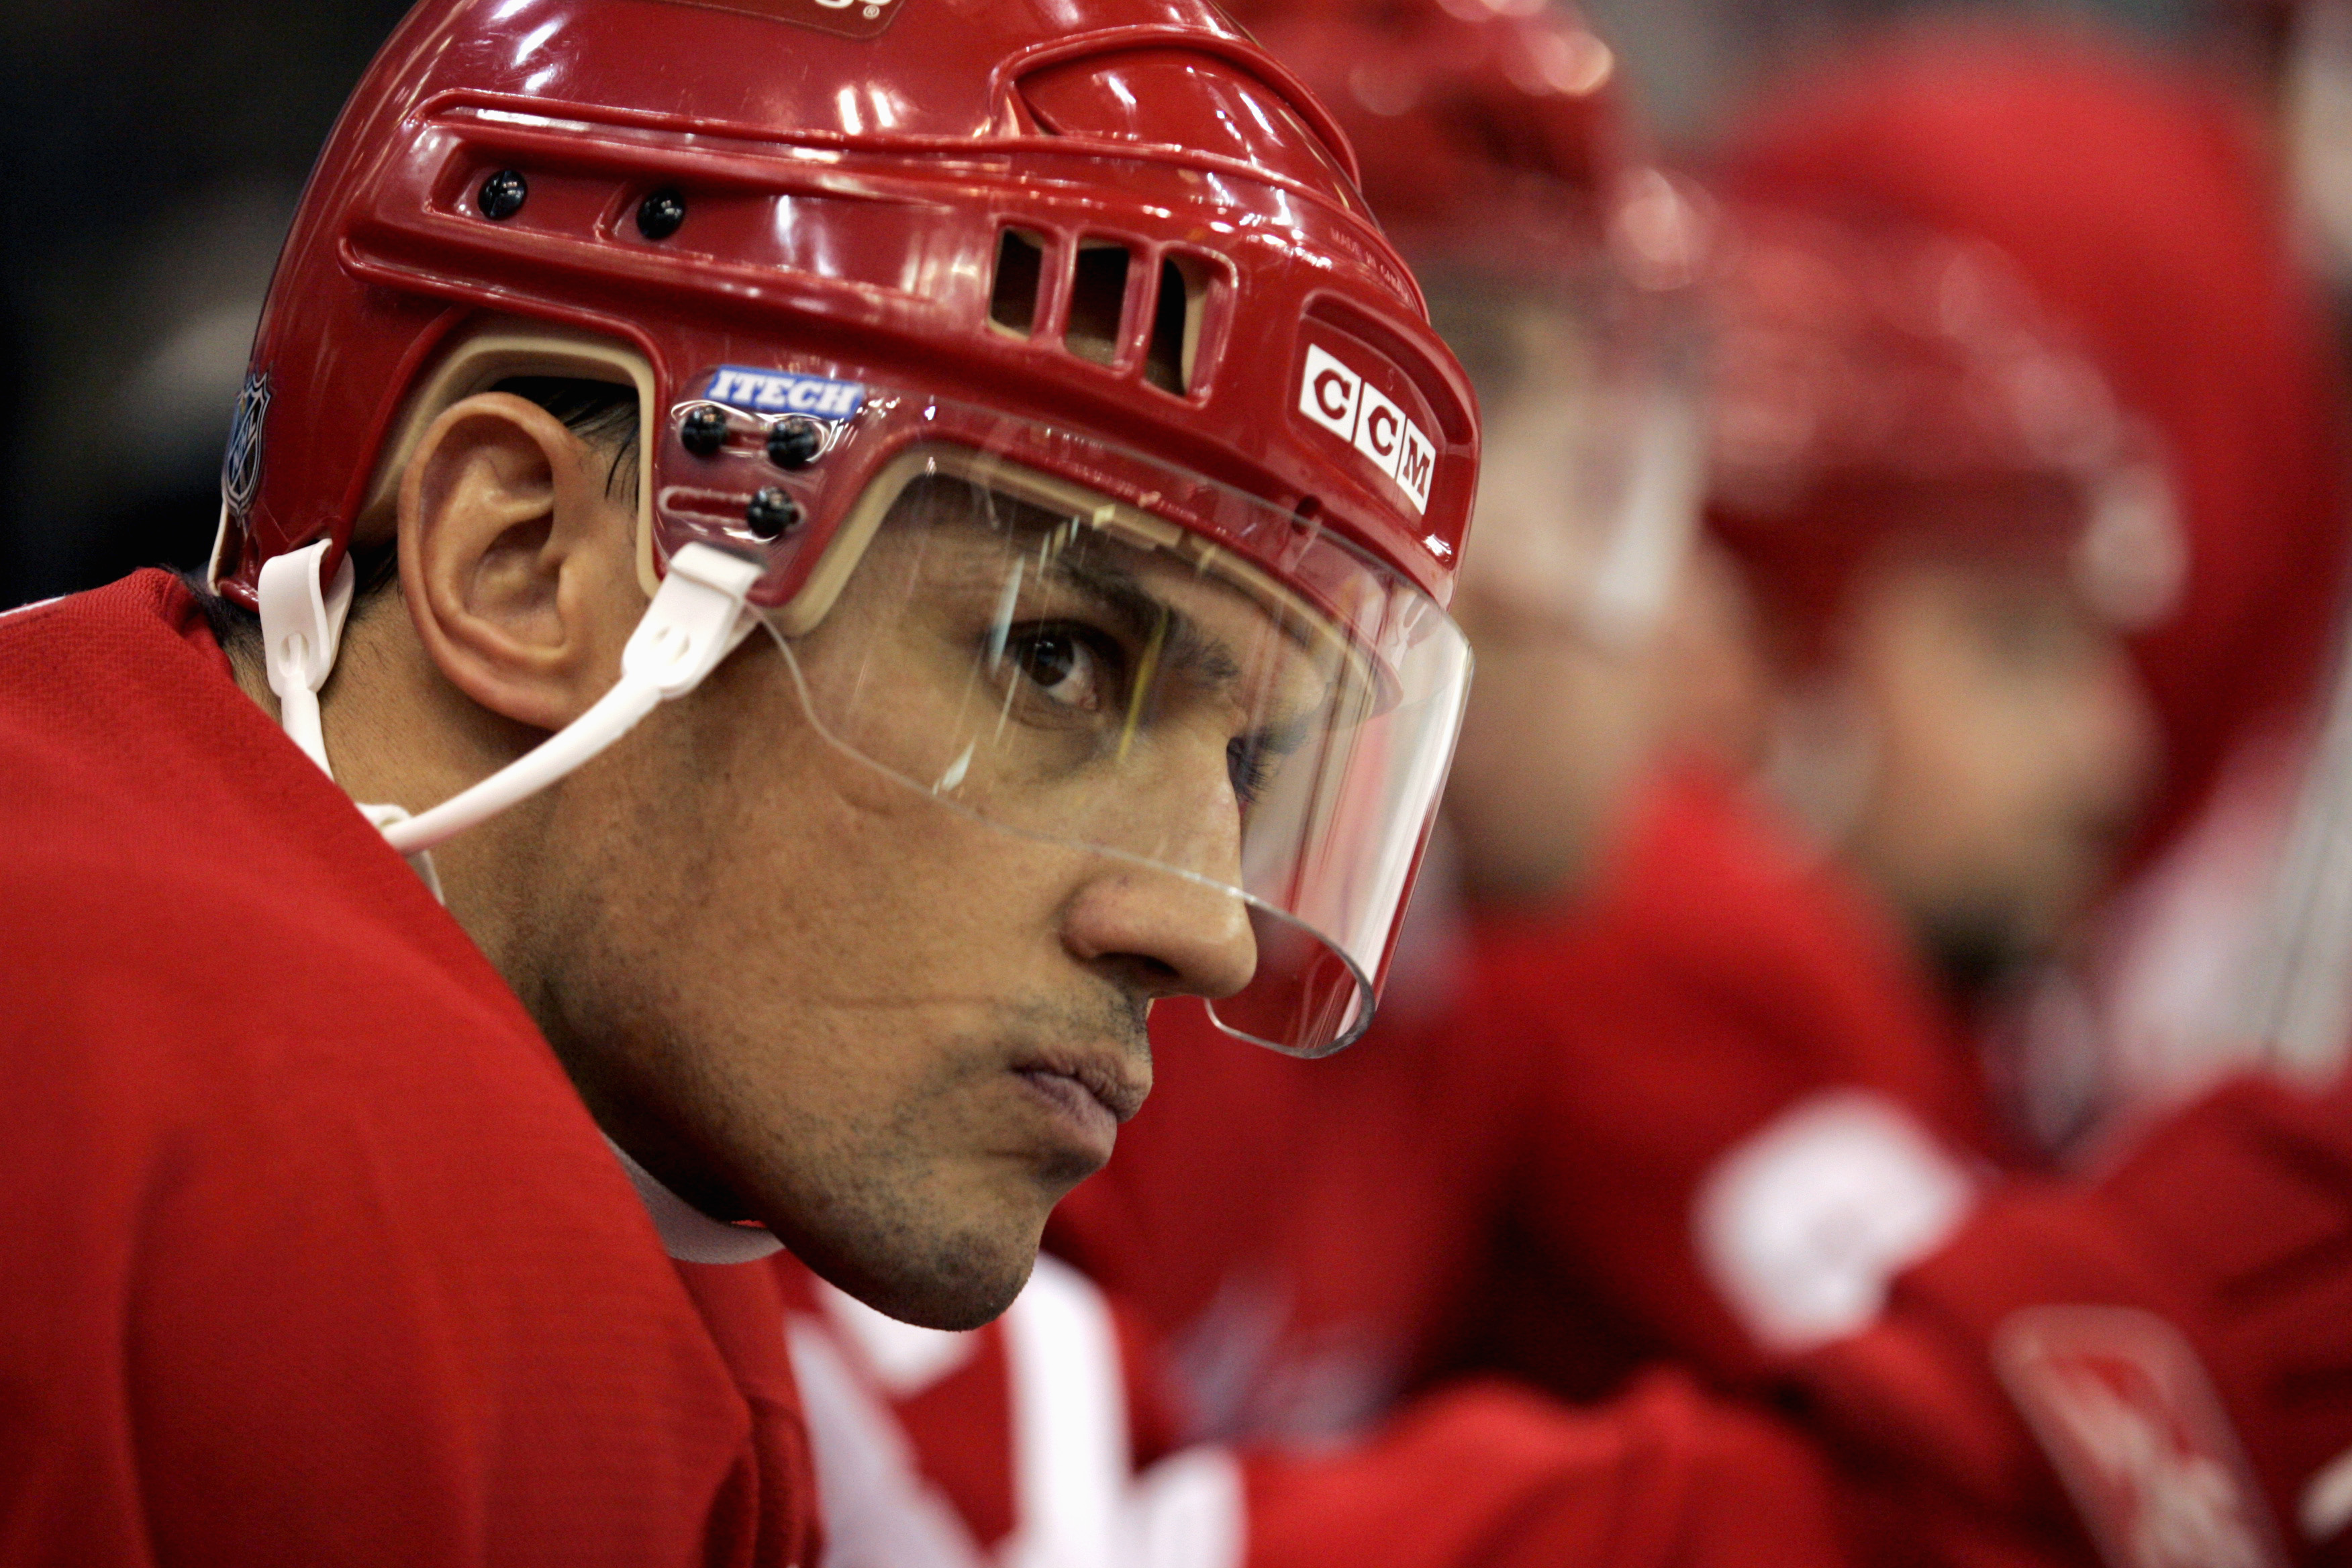 DETROIT - DECEMBER 1:  Steve Yzerman #19 of the Detroit Red Wings looks on from the bench against the Calgary Flames on December 1, 2005 at Joe Louis Arena in Detroit, Michigan.  Calgary won 3-2.  (Photo by Gregory Shamus/Getty Images)